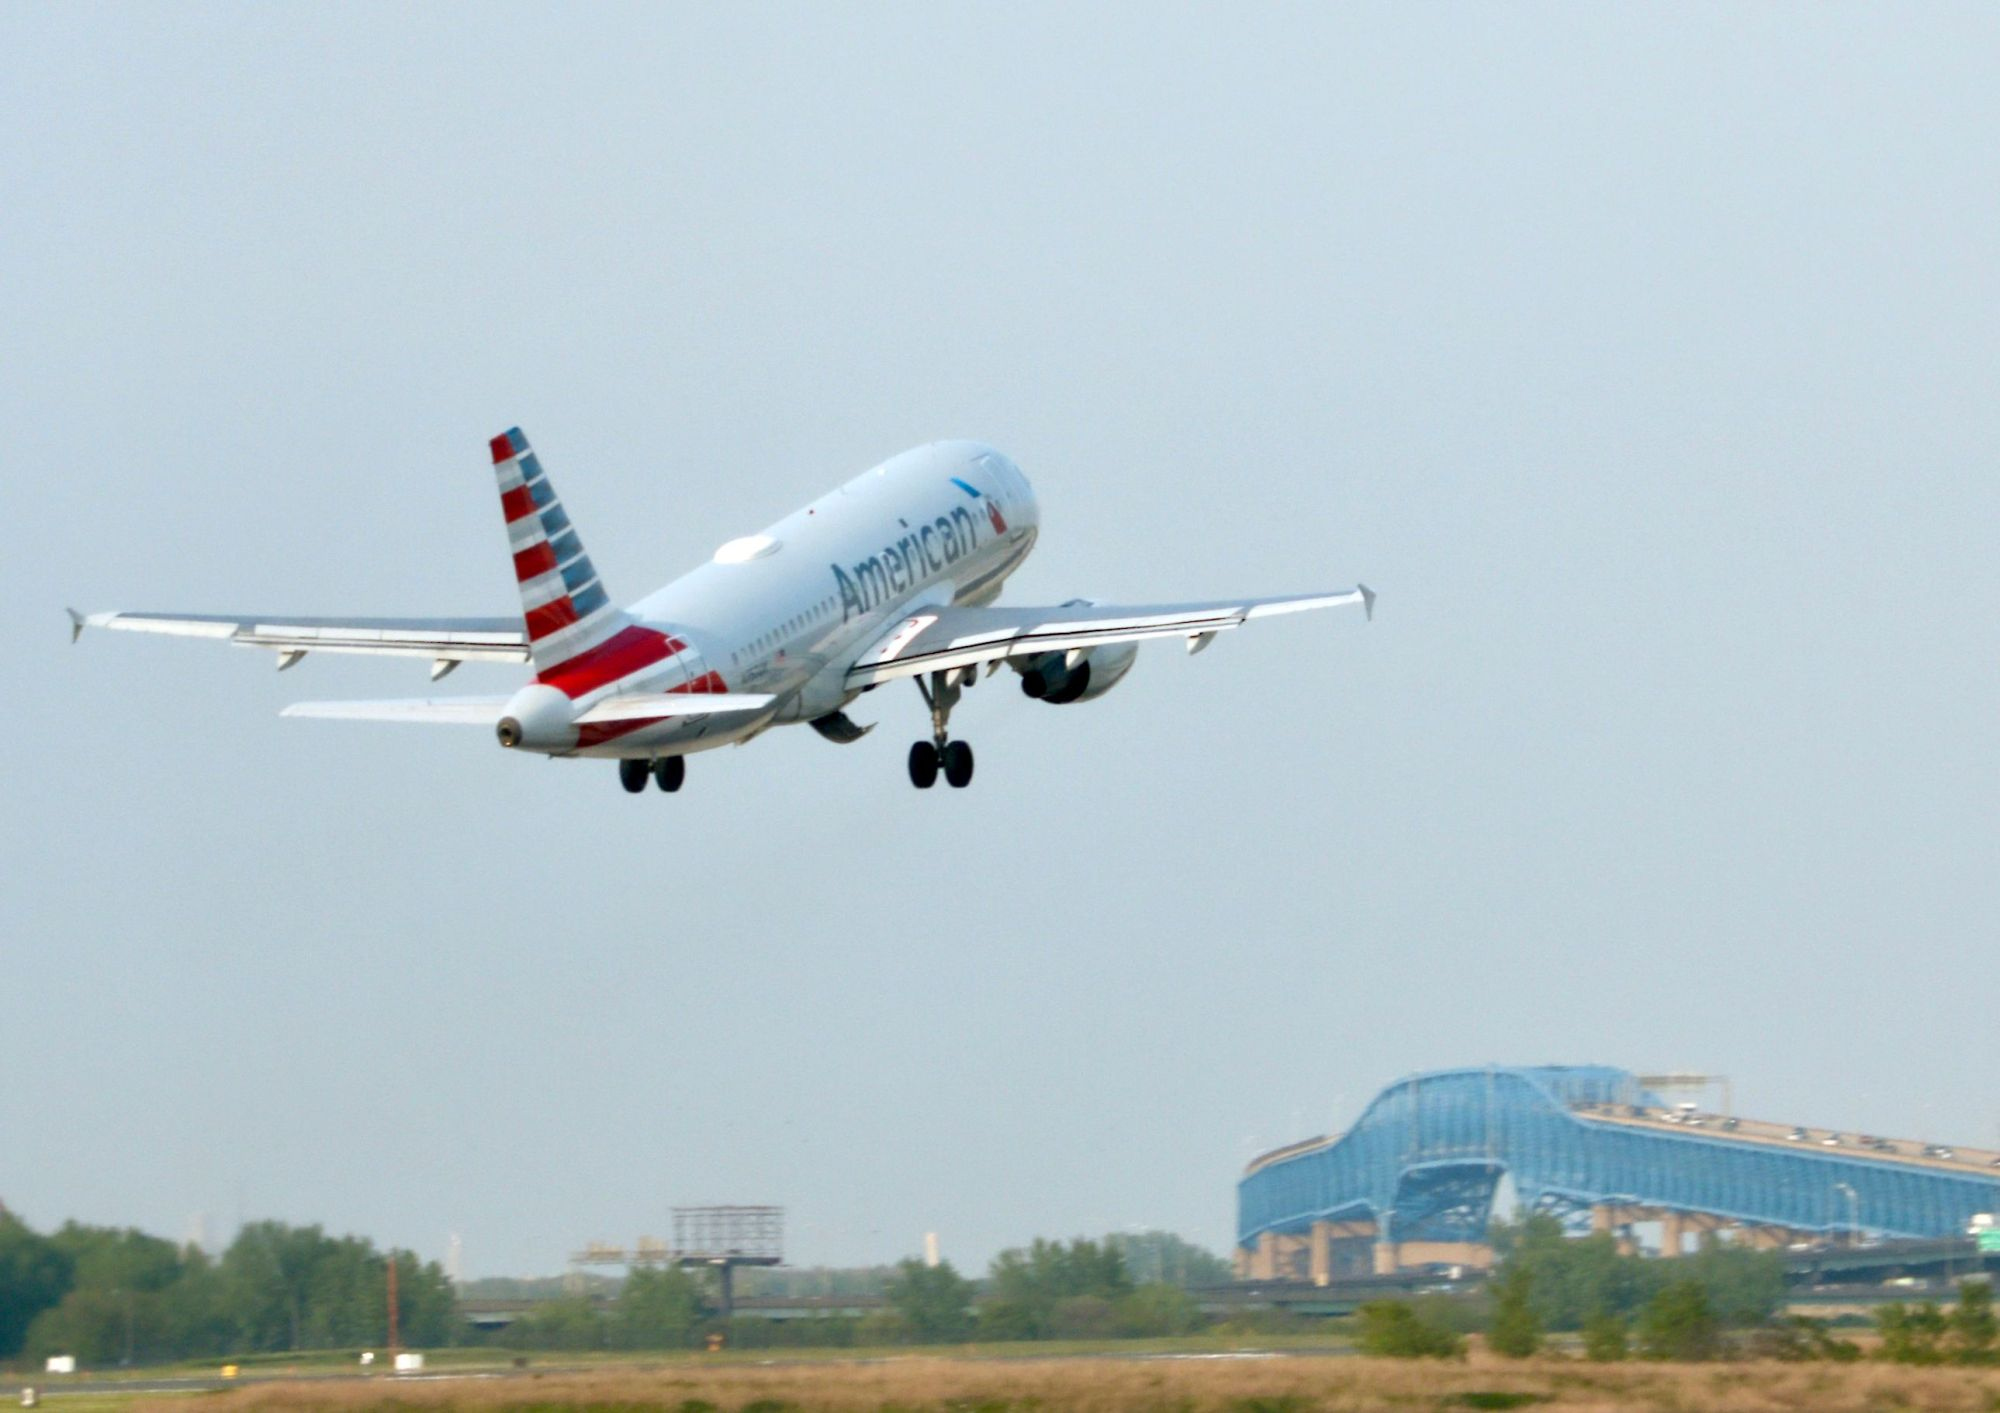 An American Airlines plane takes off from Philadelphia International Airport in May. An American Airlines mechanic allegedly tampered with an aircraft over stalled union negotiations that he said harmed him financially. U.S. prosecutors have charged Abdul-Majeed Marouf Ahmed Alani with interfering with part of an aircraft flight data system, causing the grounding of a July flight from Miami to the Bahamas.   AFP-JIJI